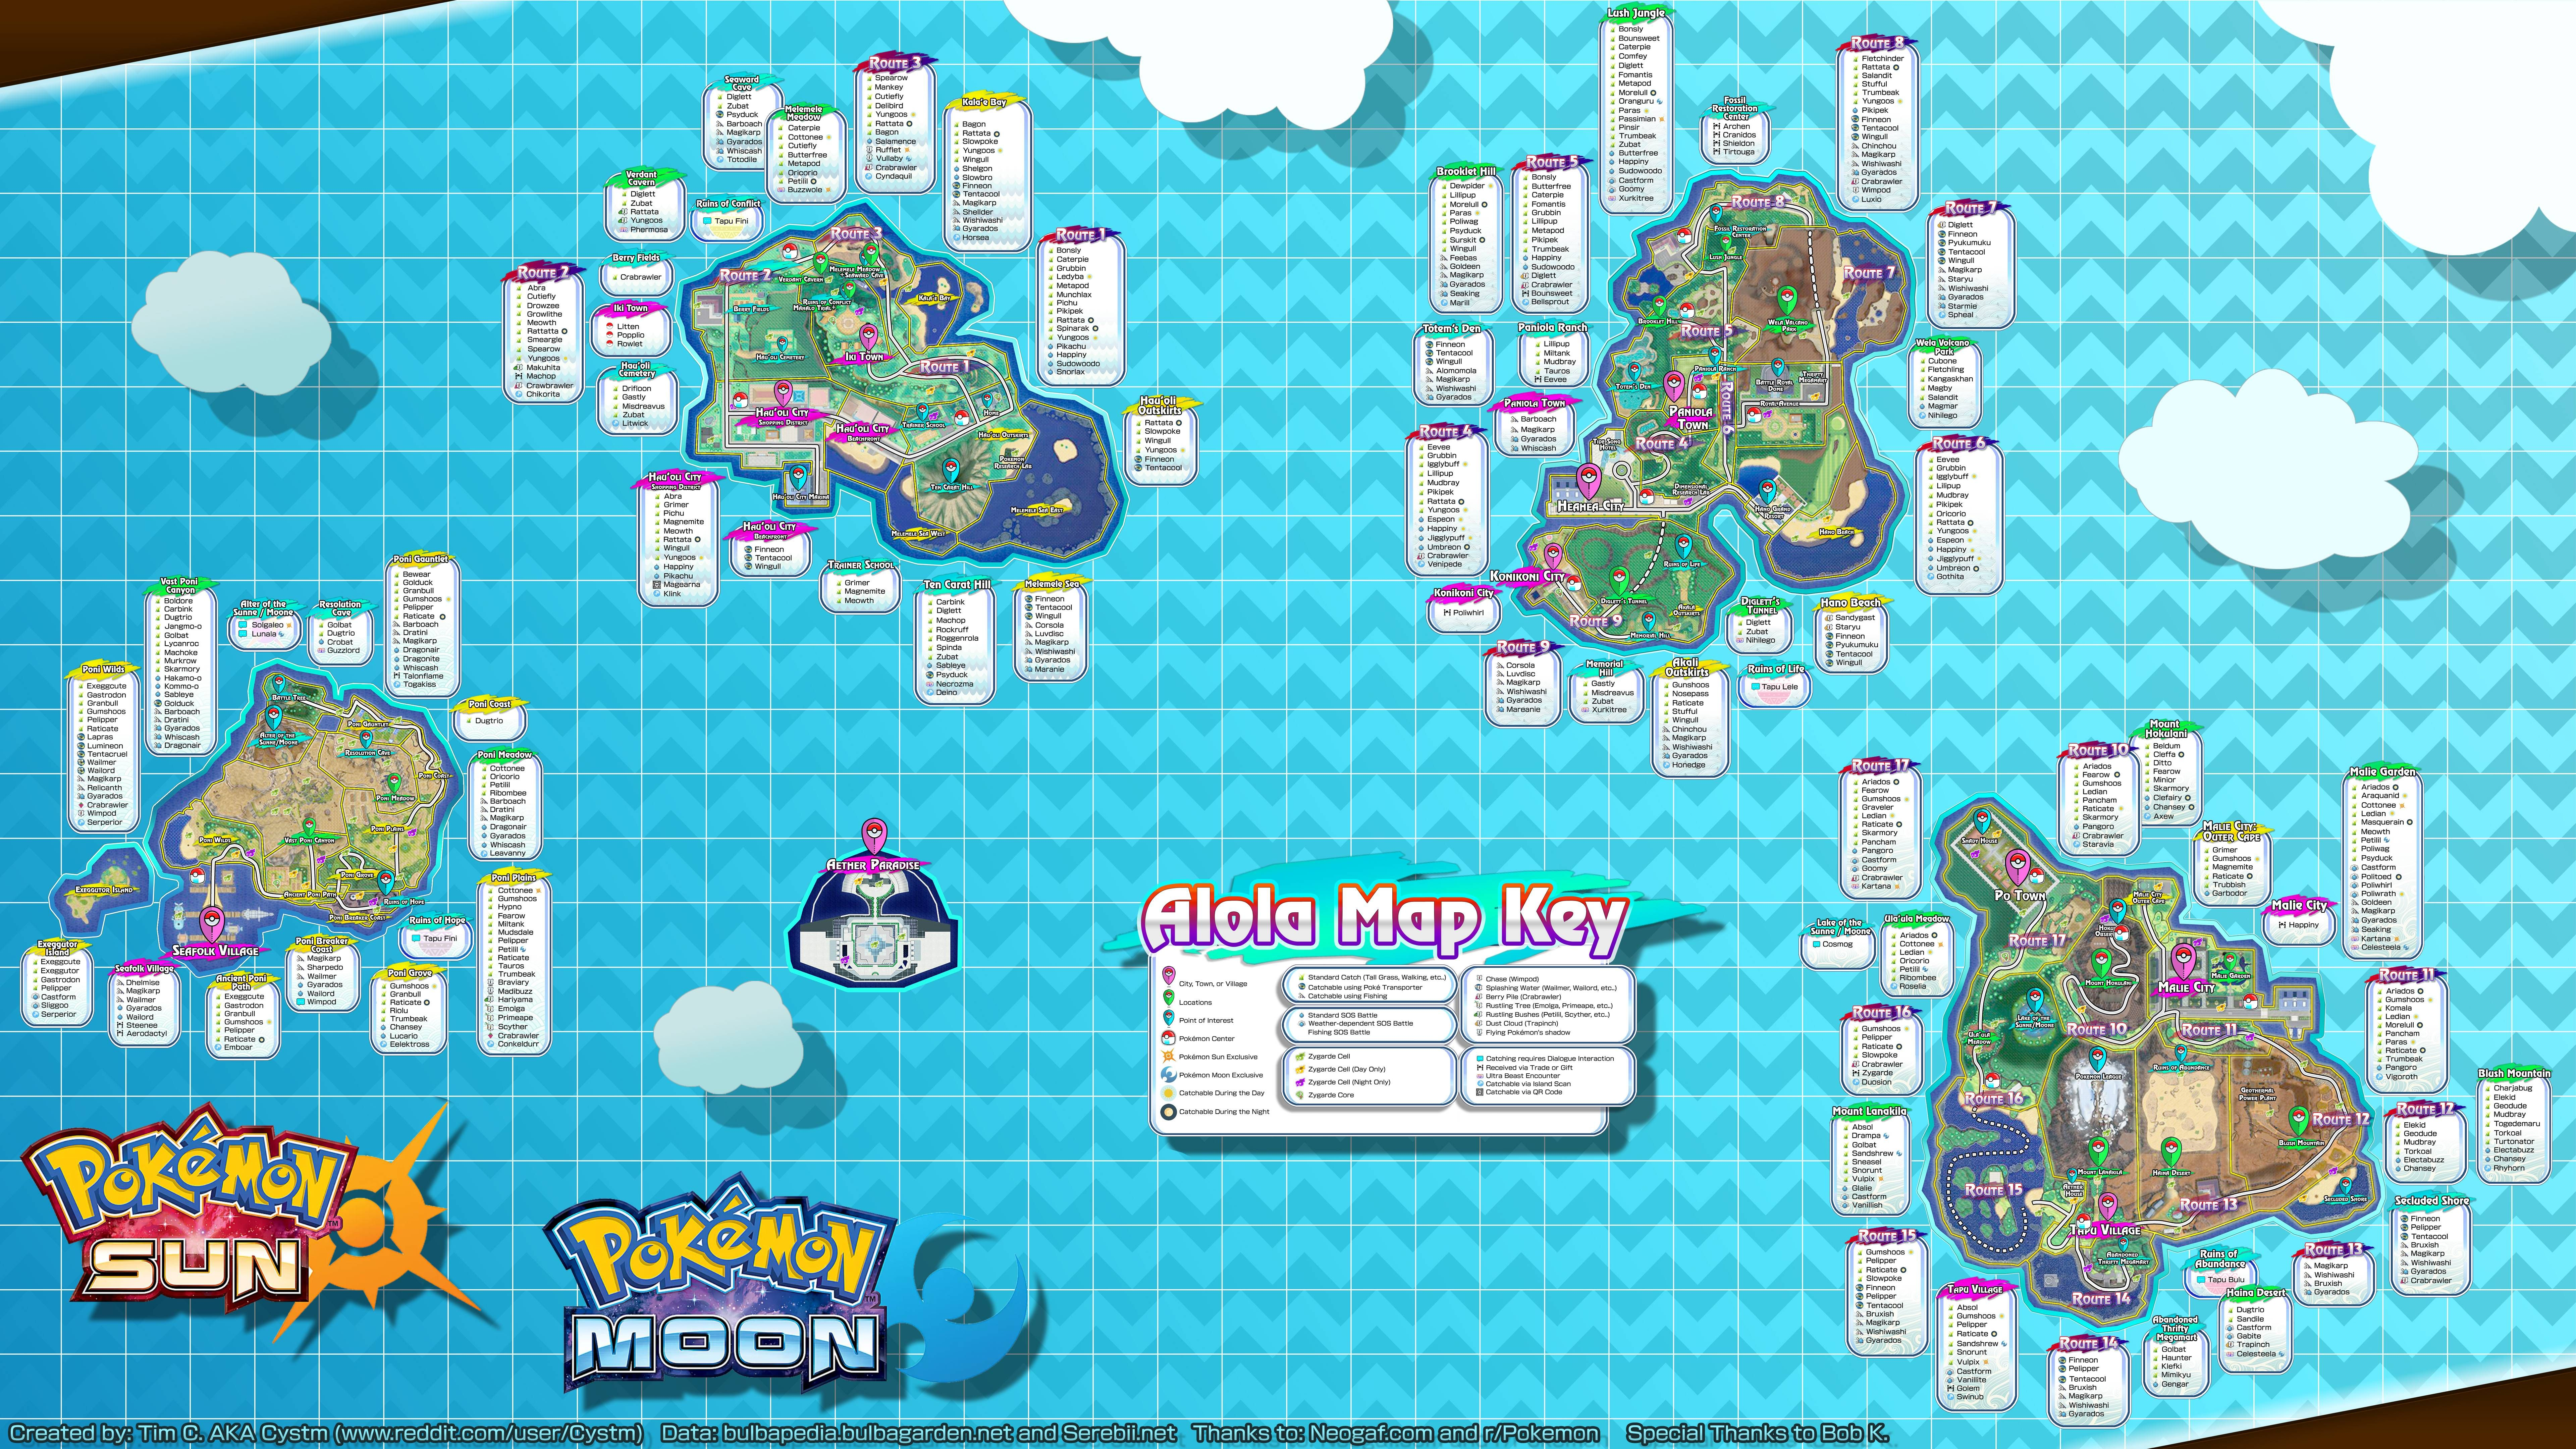 Alola Map With Sun And Moon Pokemon Locations Plus Locations Of Zygarde Cells And Cores Pokemon Moon Map Pokemon Locations